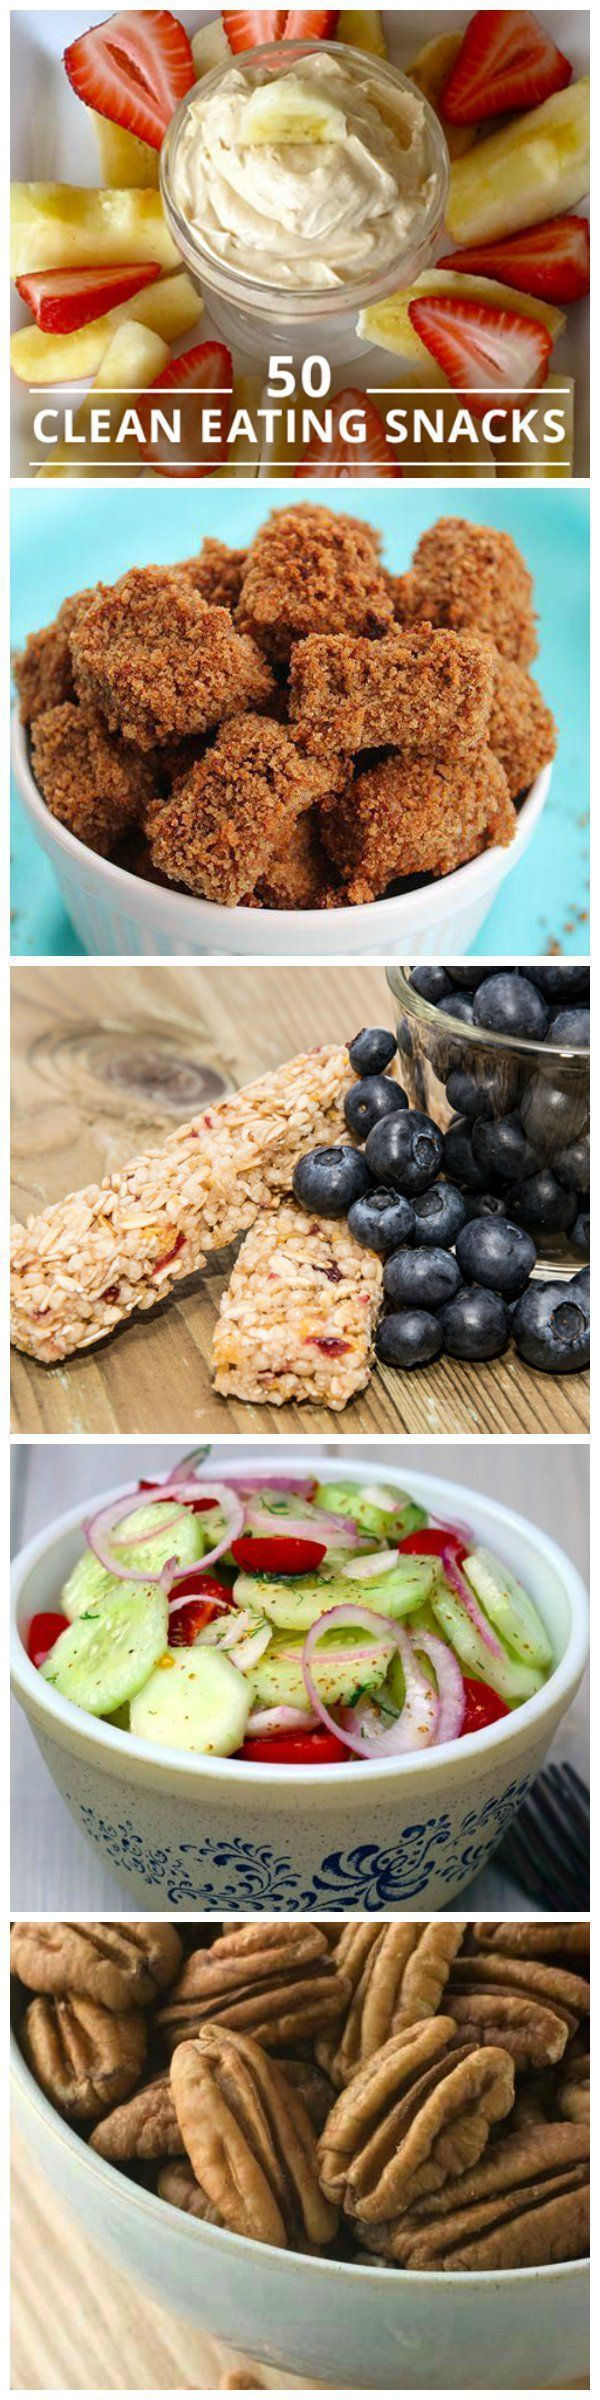 50 clean eating snacks clean eating snacks weight loss journey